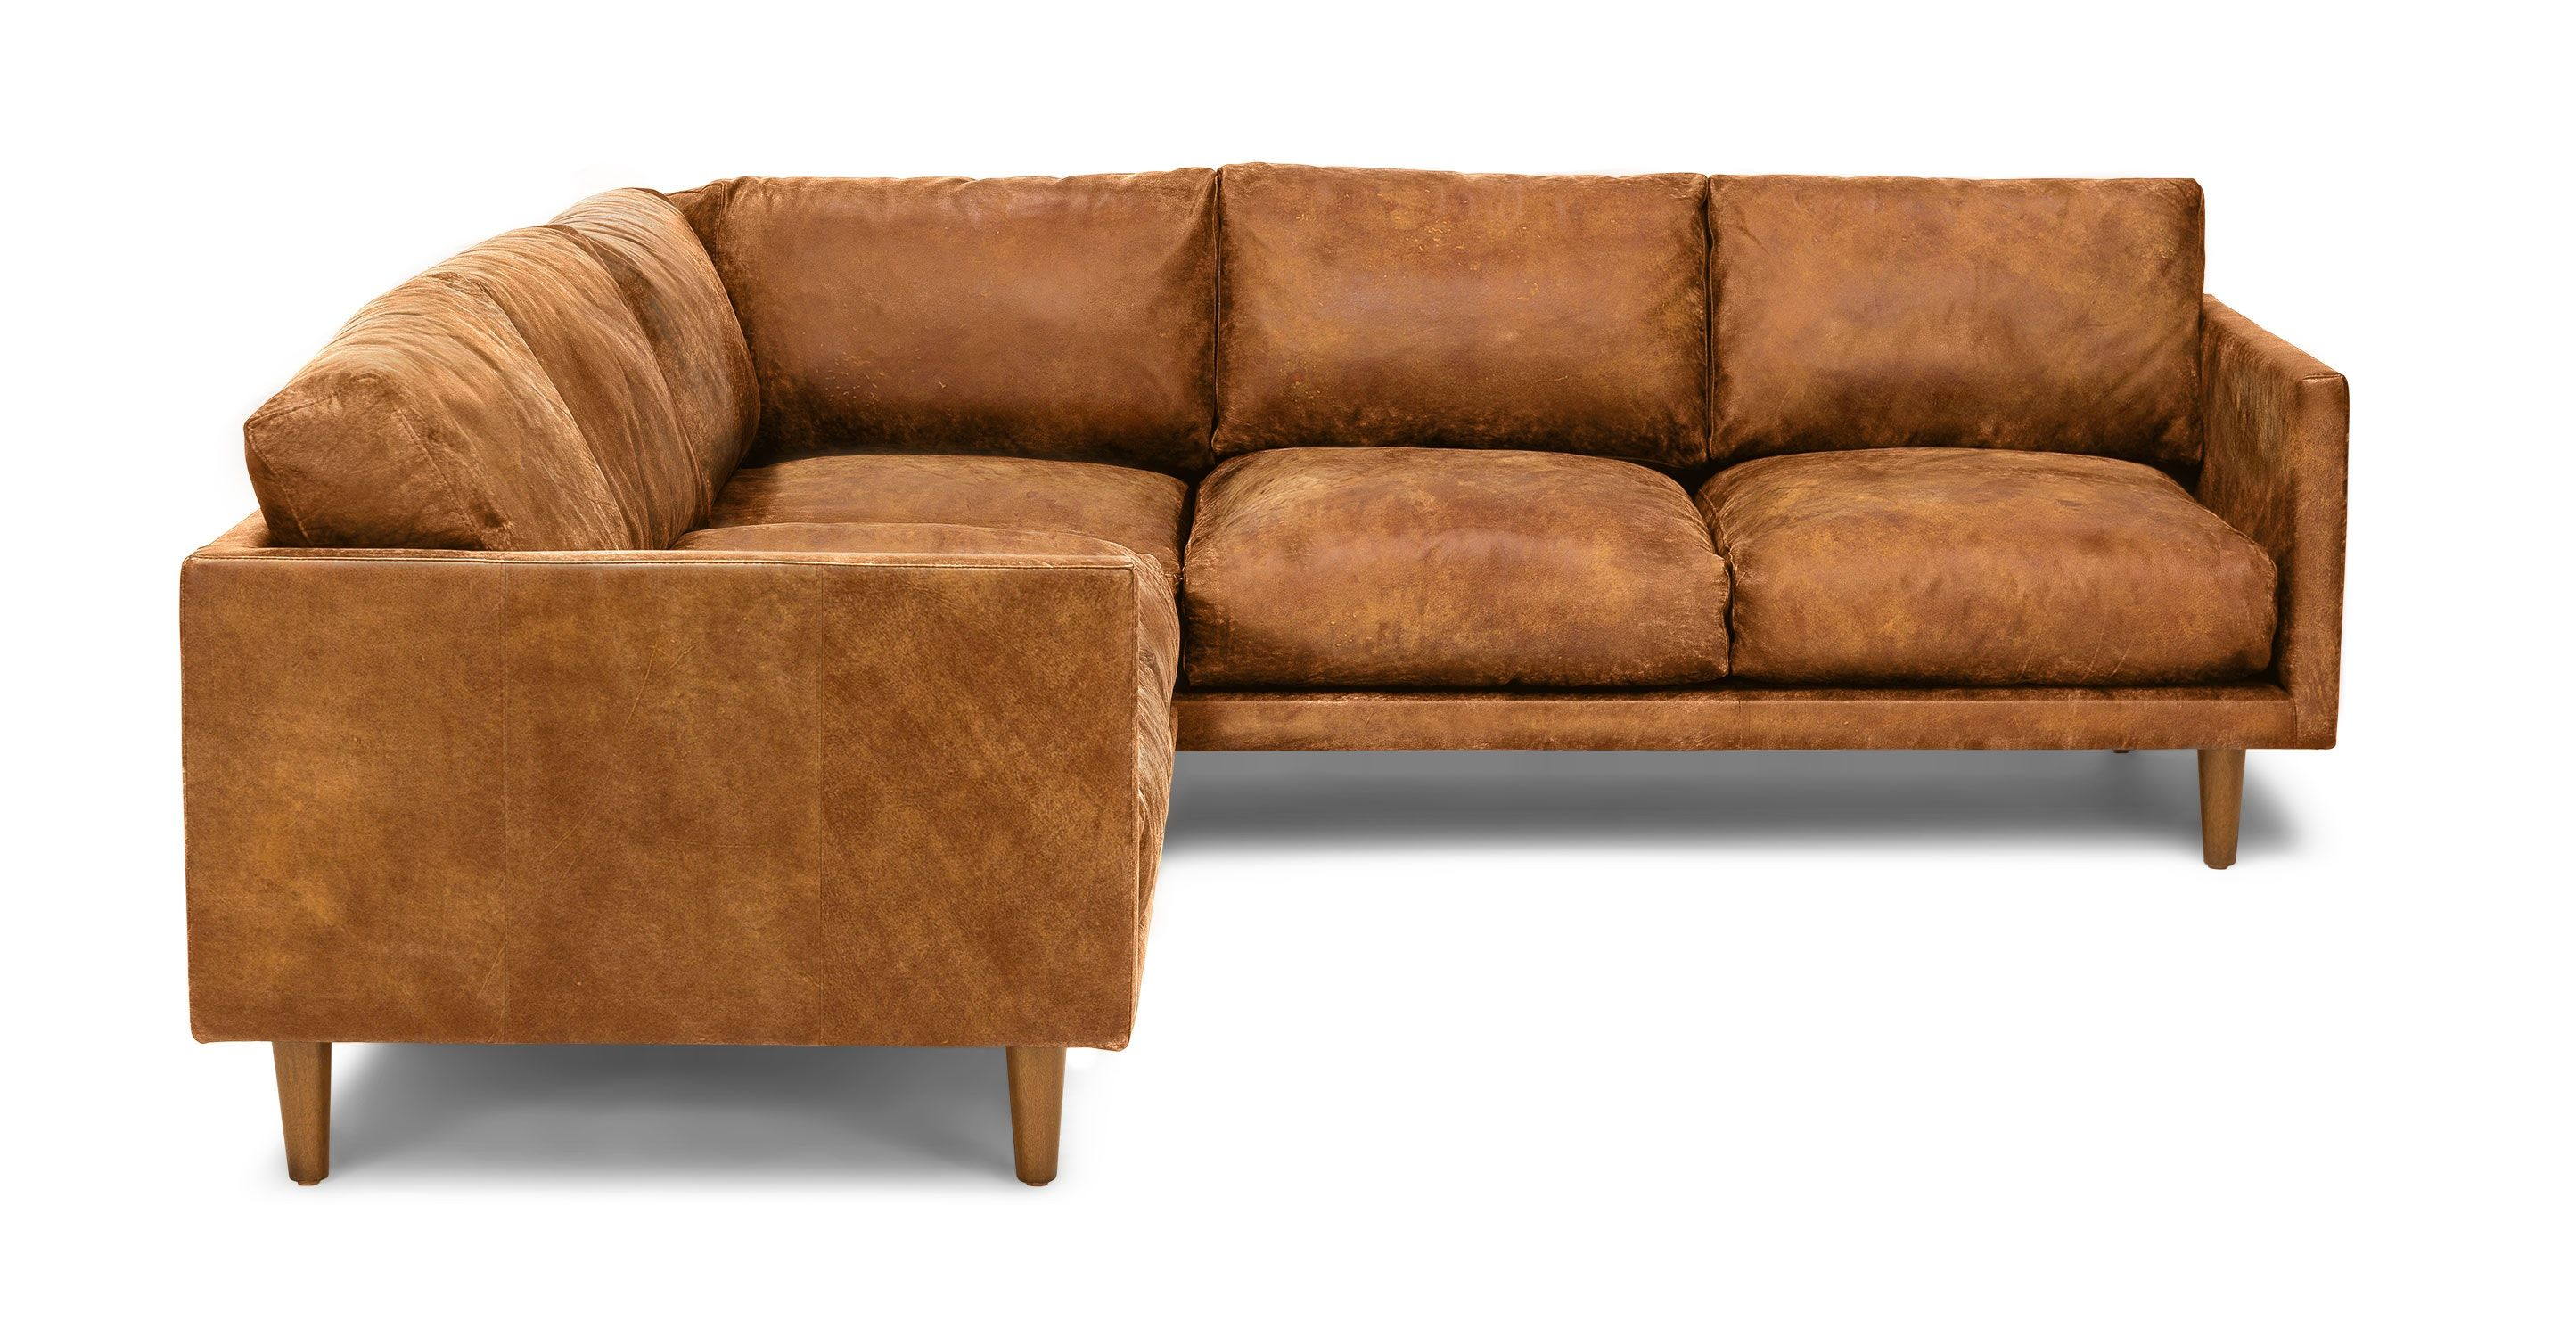 Tan Brown Leather Sectional Upholstered   Article Nirvana Modern Furniture